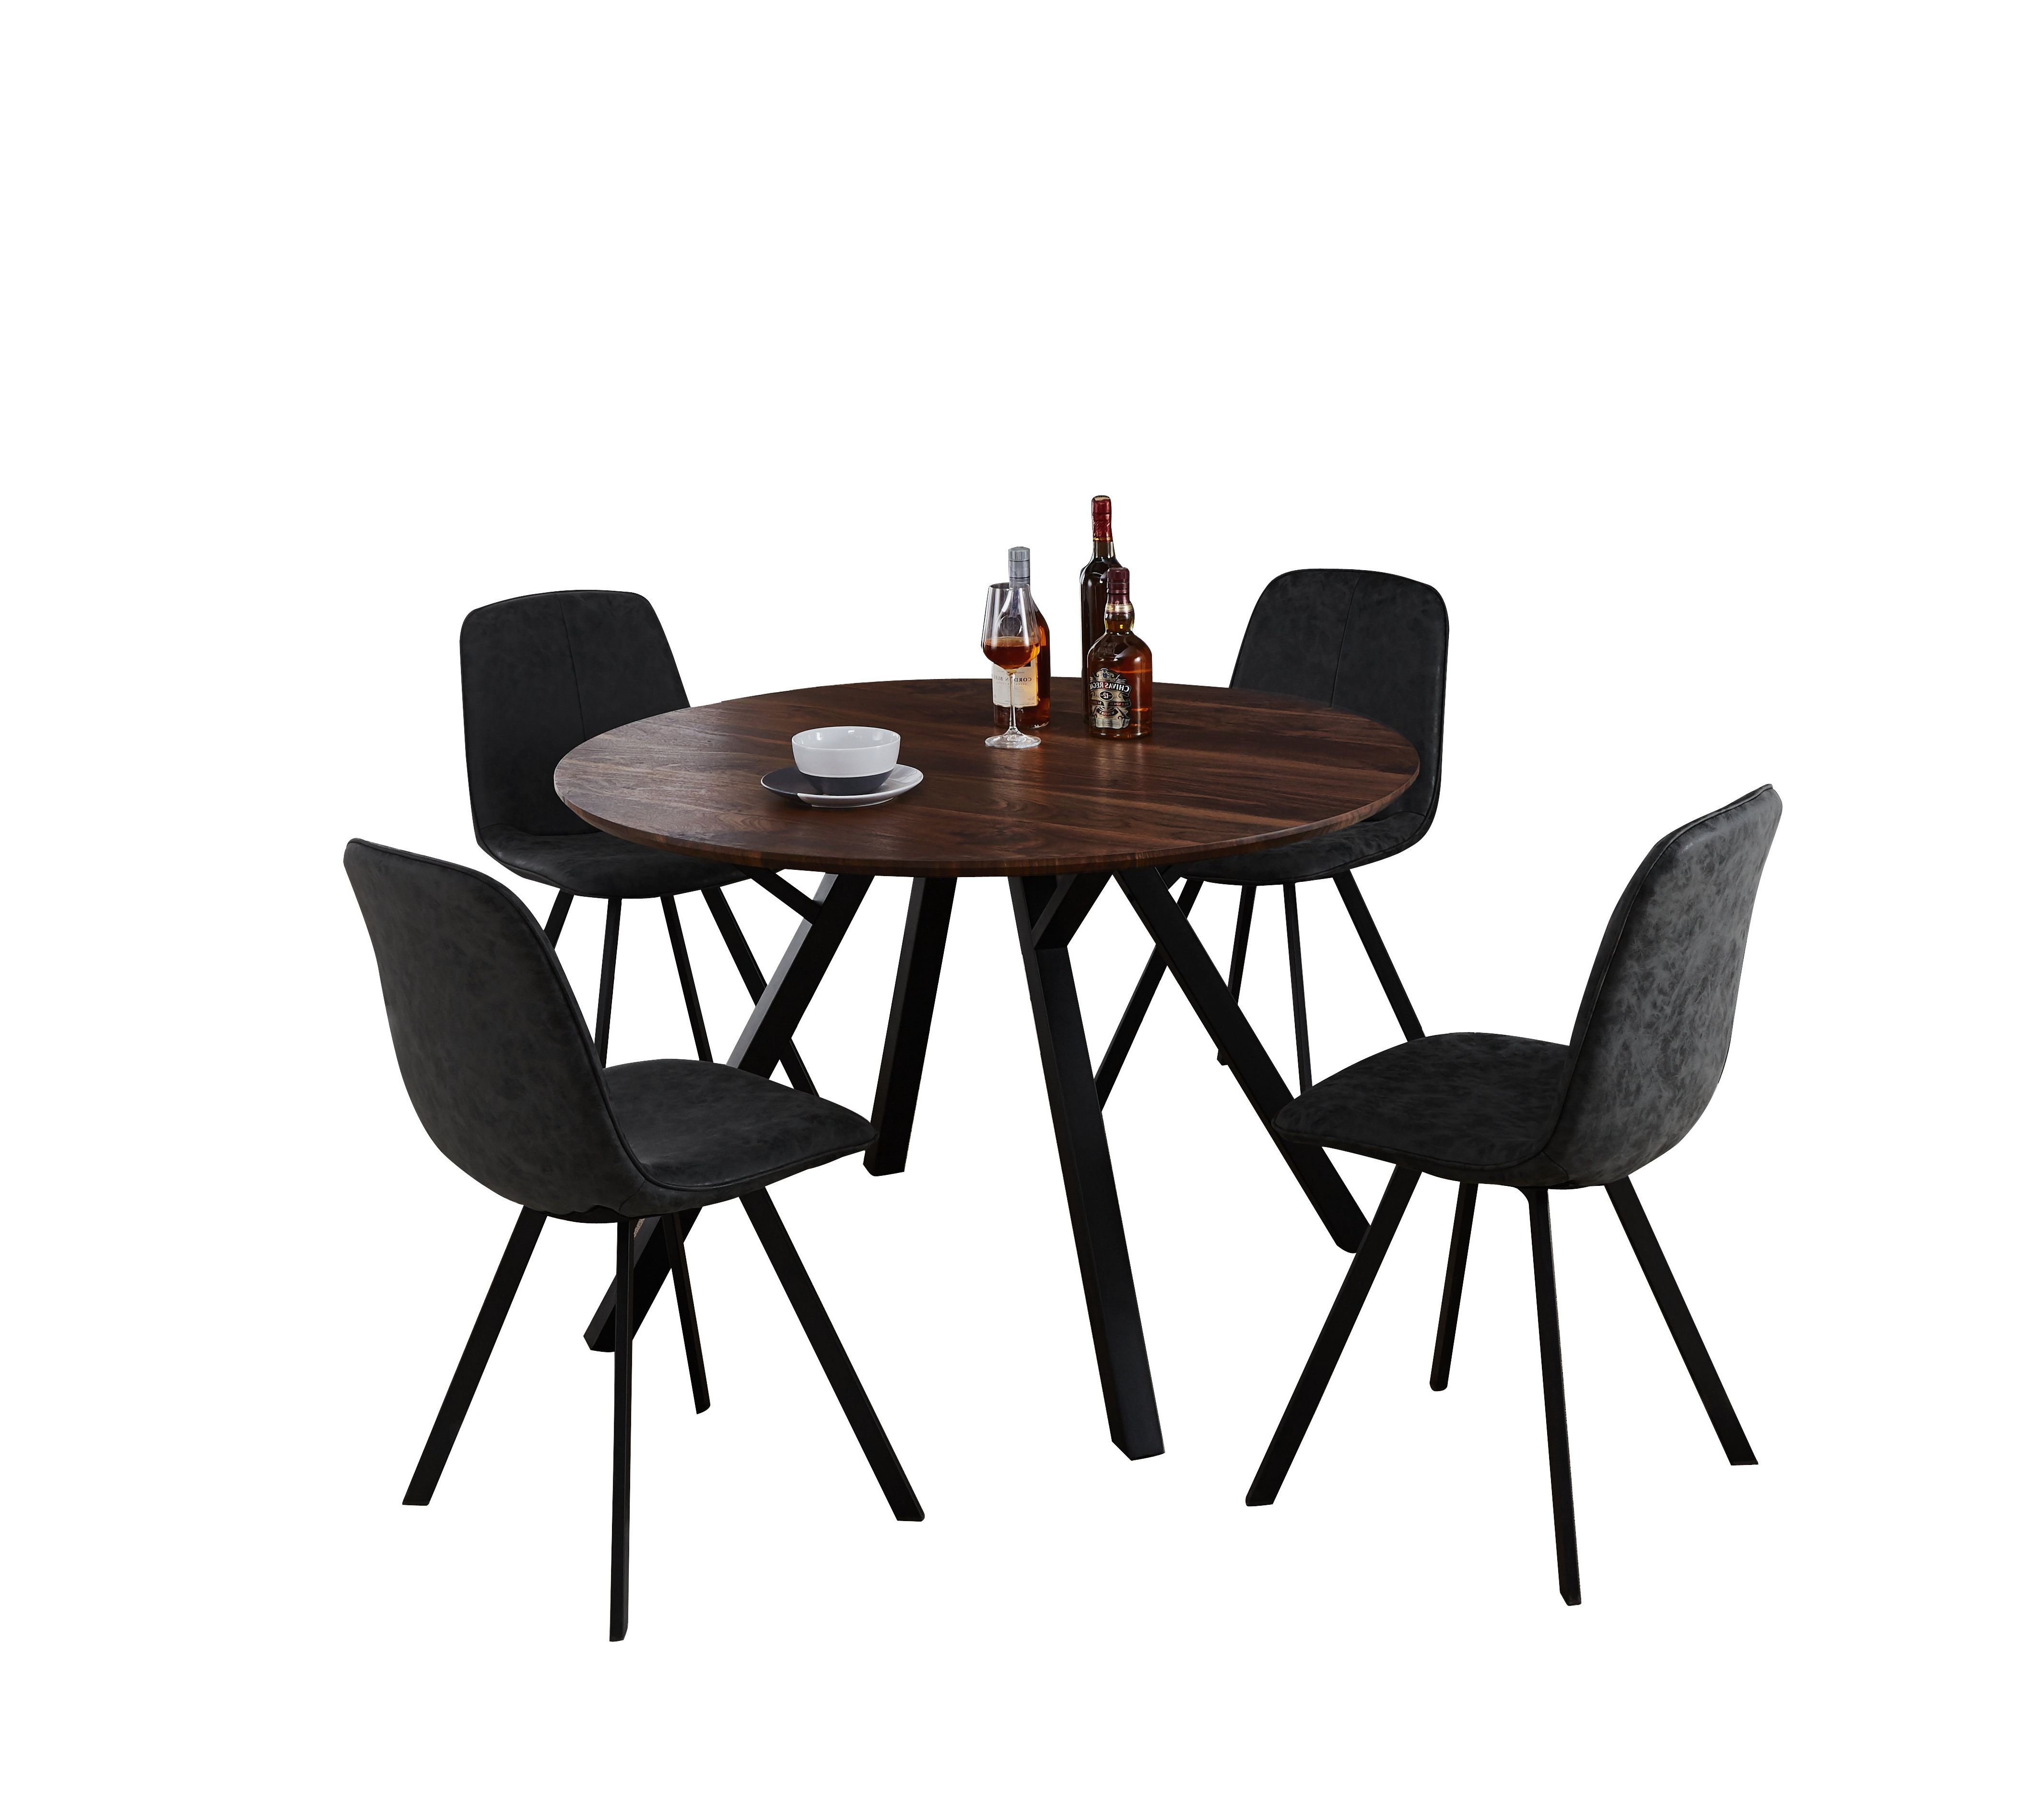 Williston Forge Malmo Design Round Table 5 Piece Solid Wood Dining Pertaining To Most Popular Wiggs 5 Piece Dining Sets (View 25 of 25)